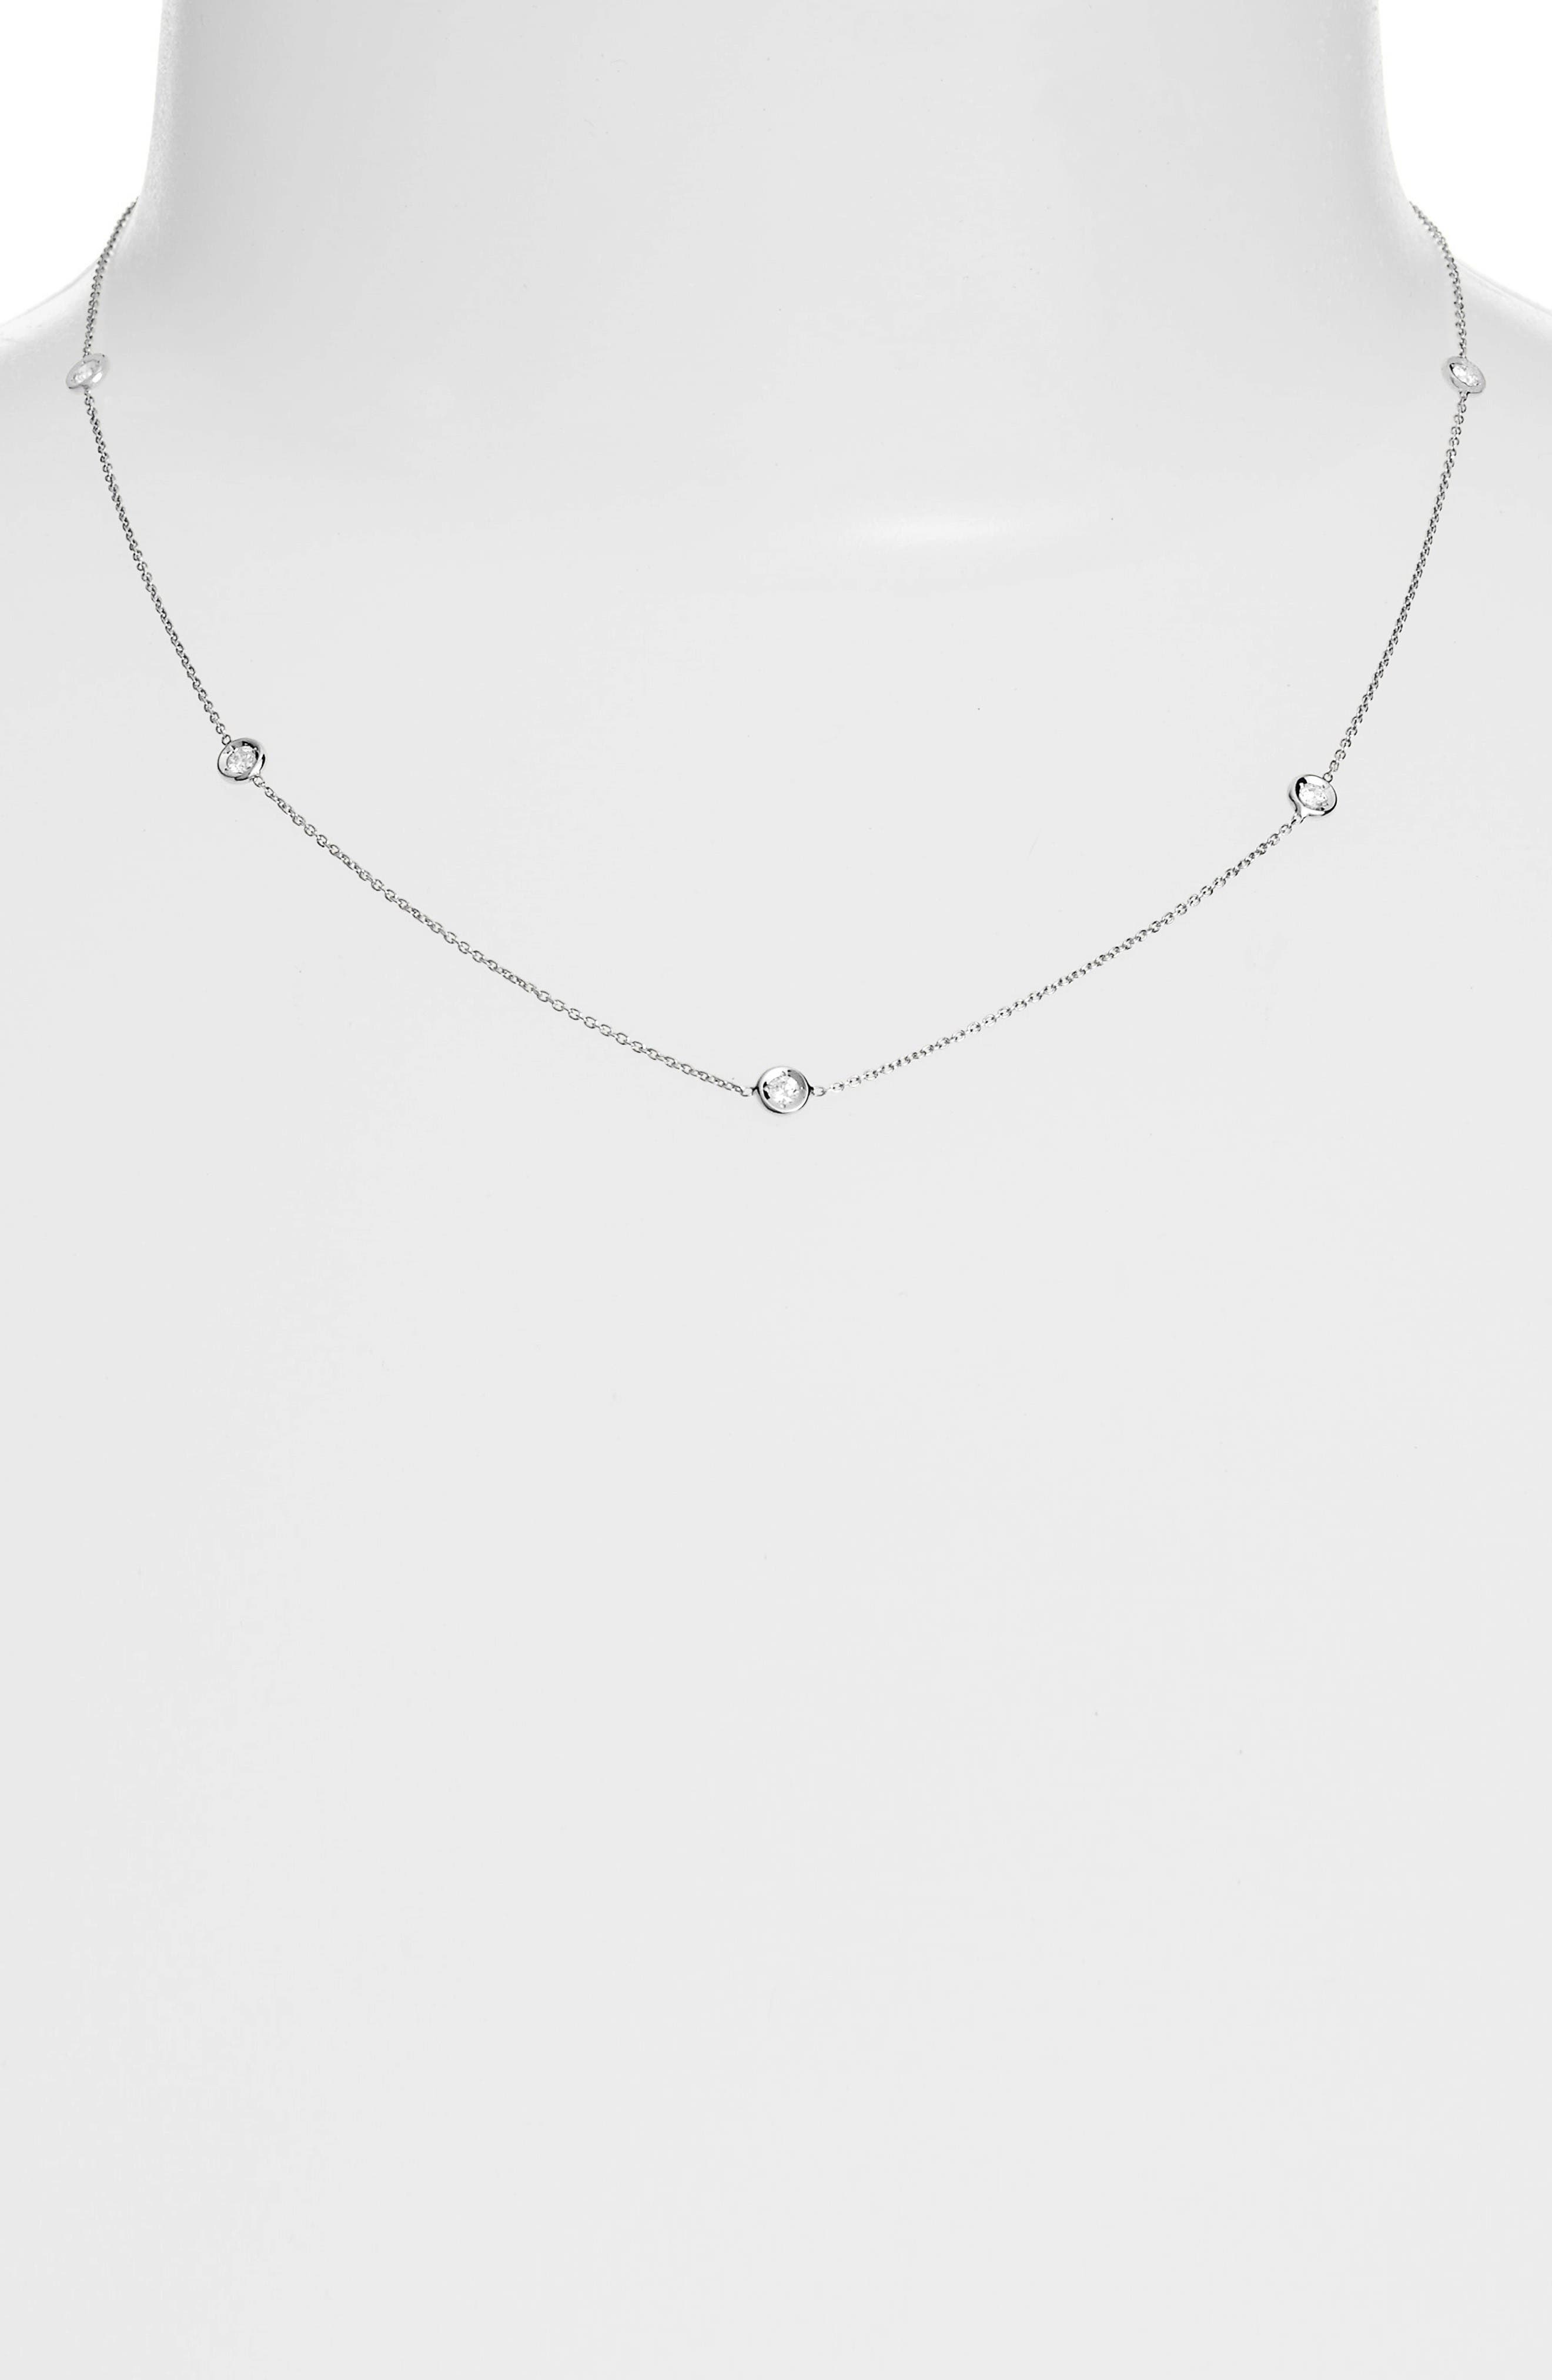 Diamond Station Necklace,                         Main,                         color, D0.23 GHSI 18KWG